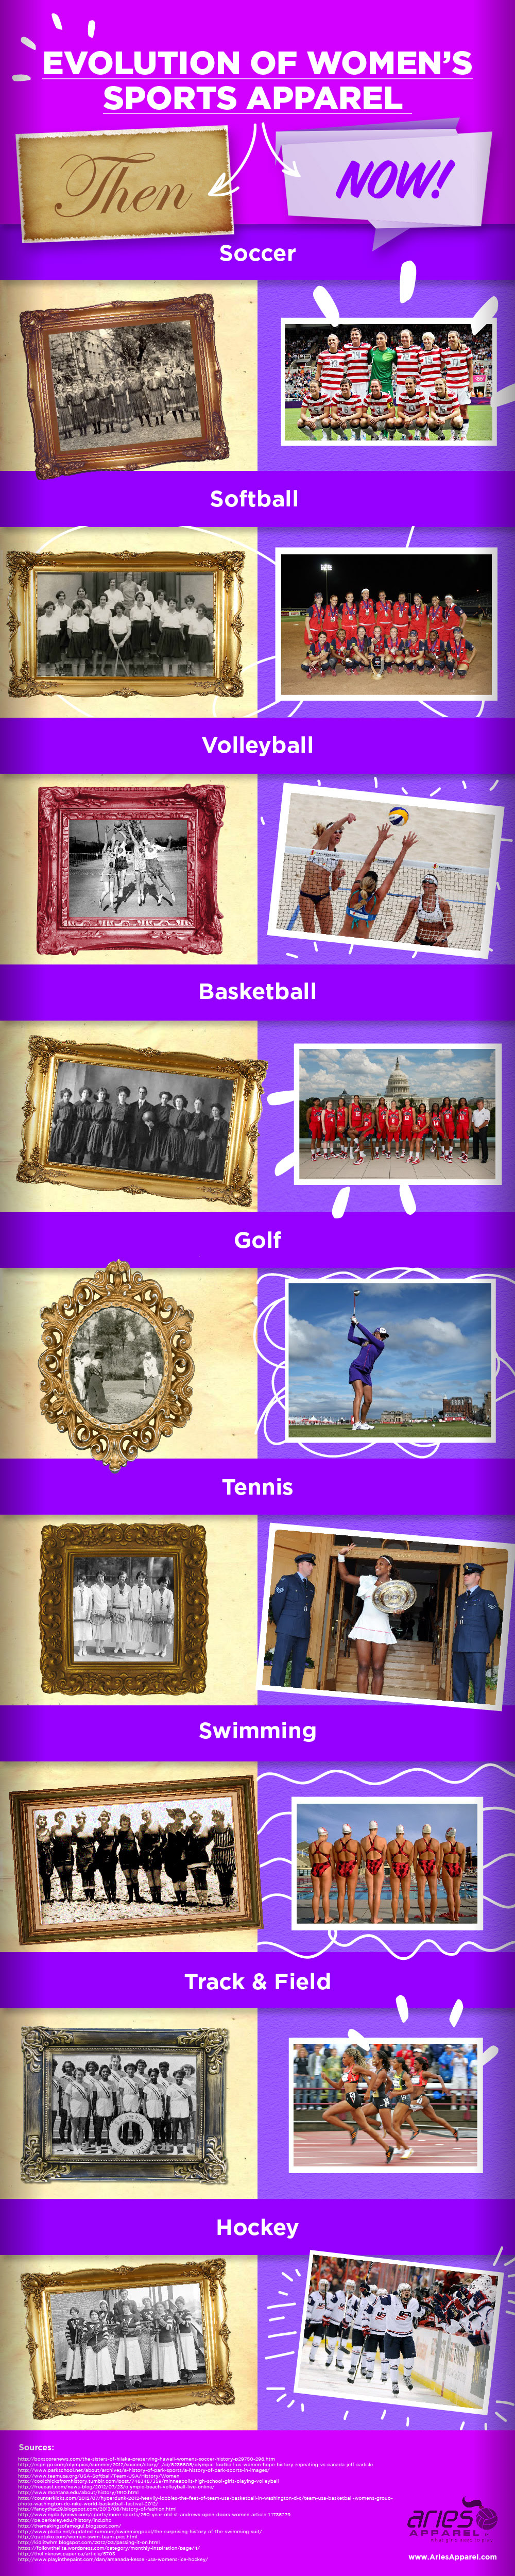 Infographic: The Evolution of Women's Sport Apparel #infographic